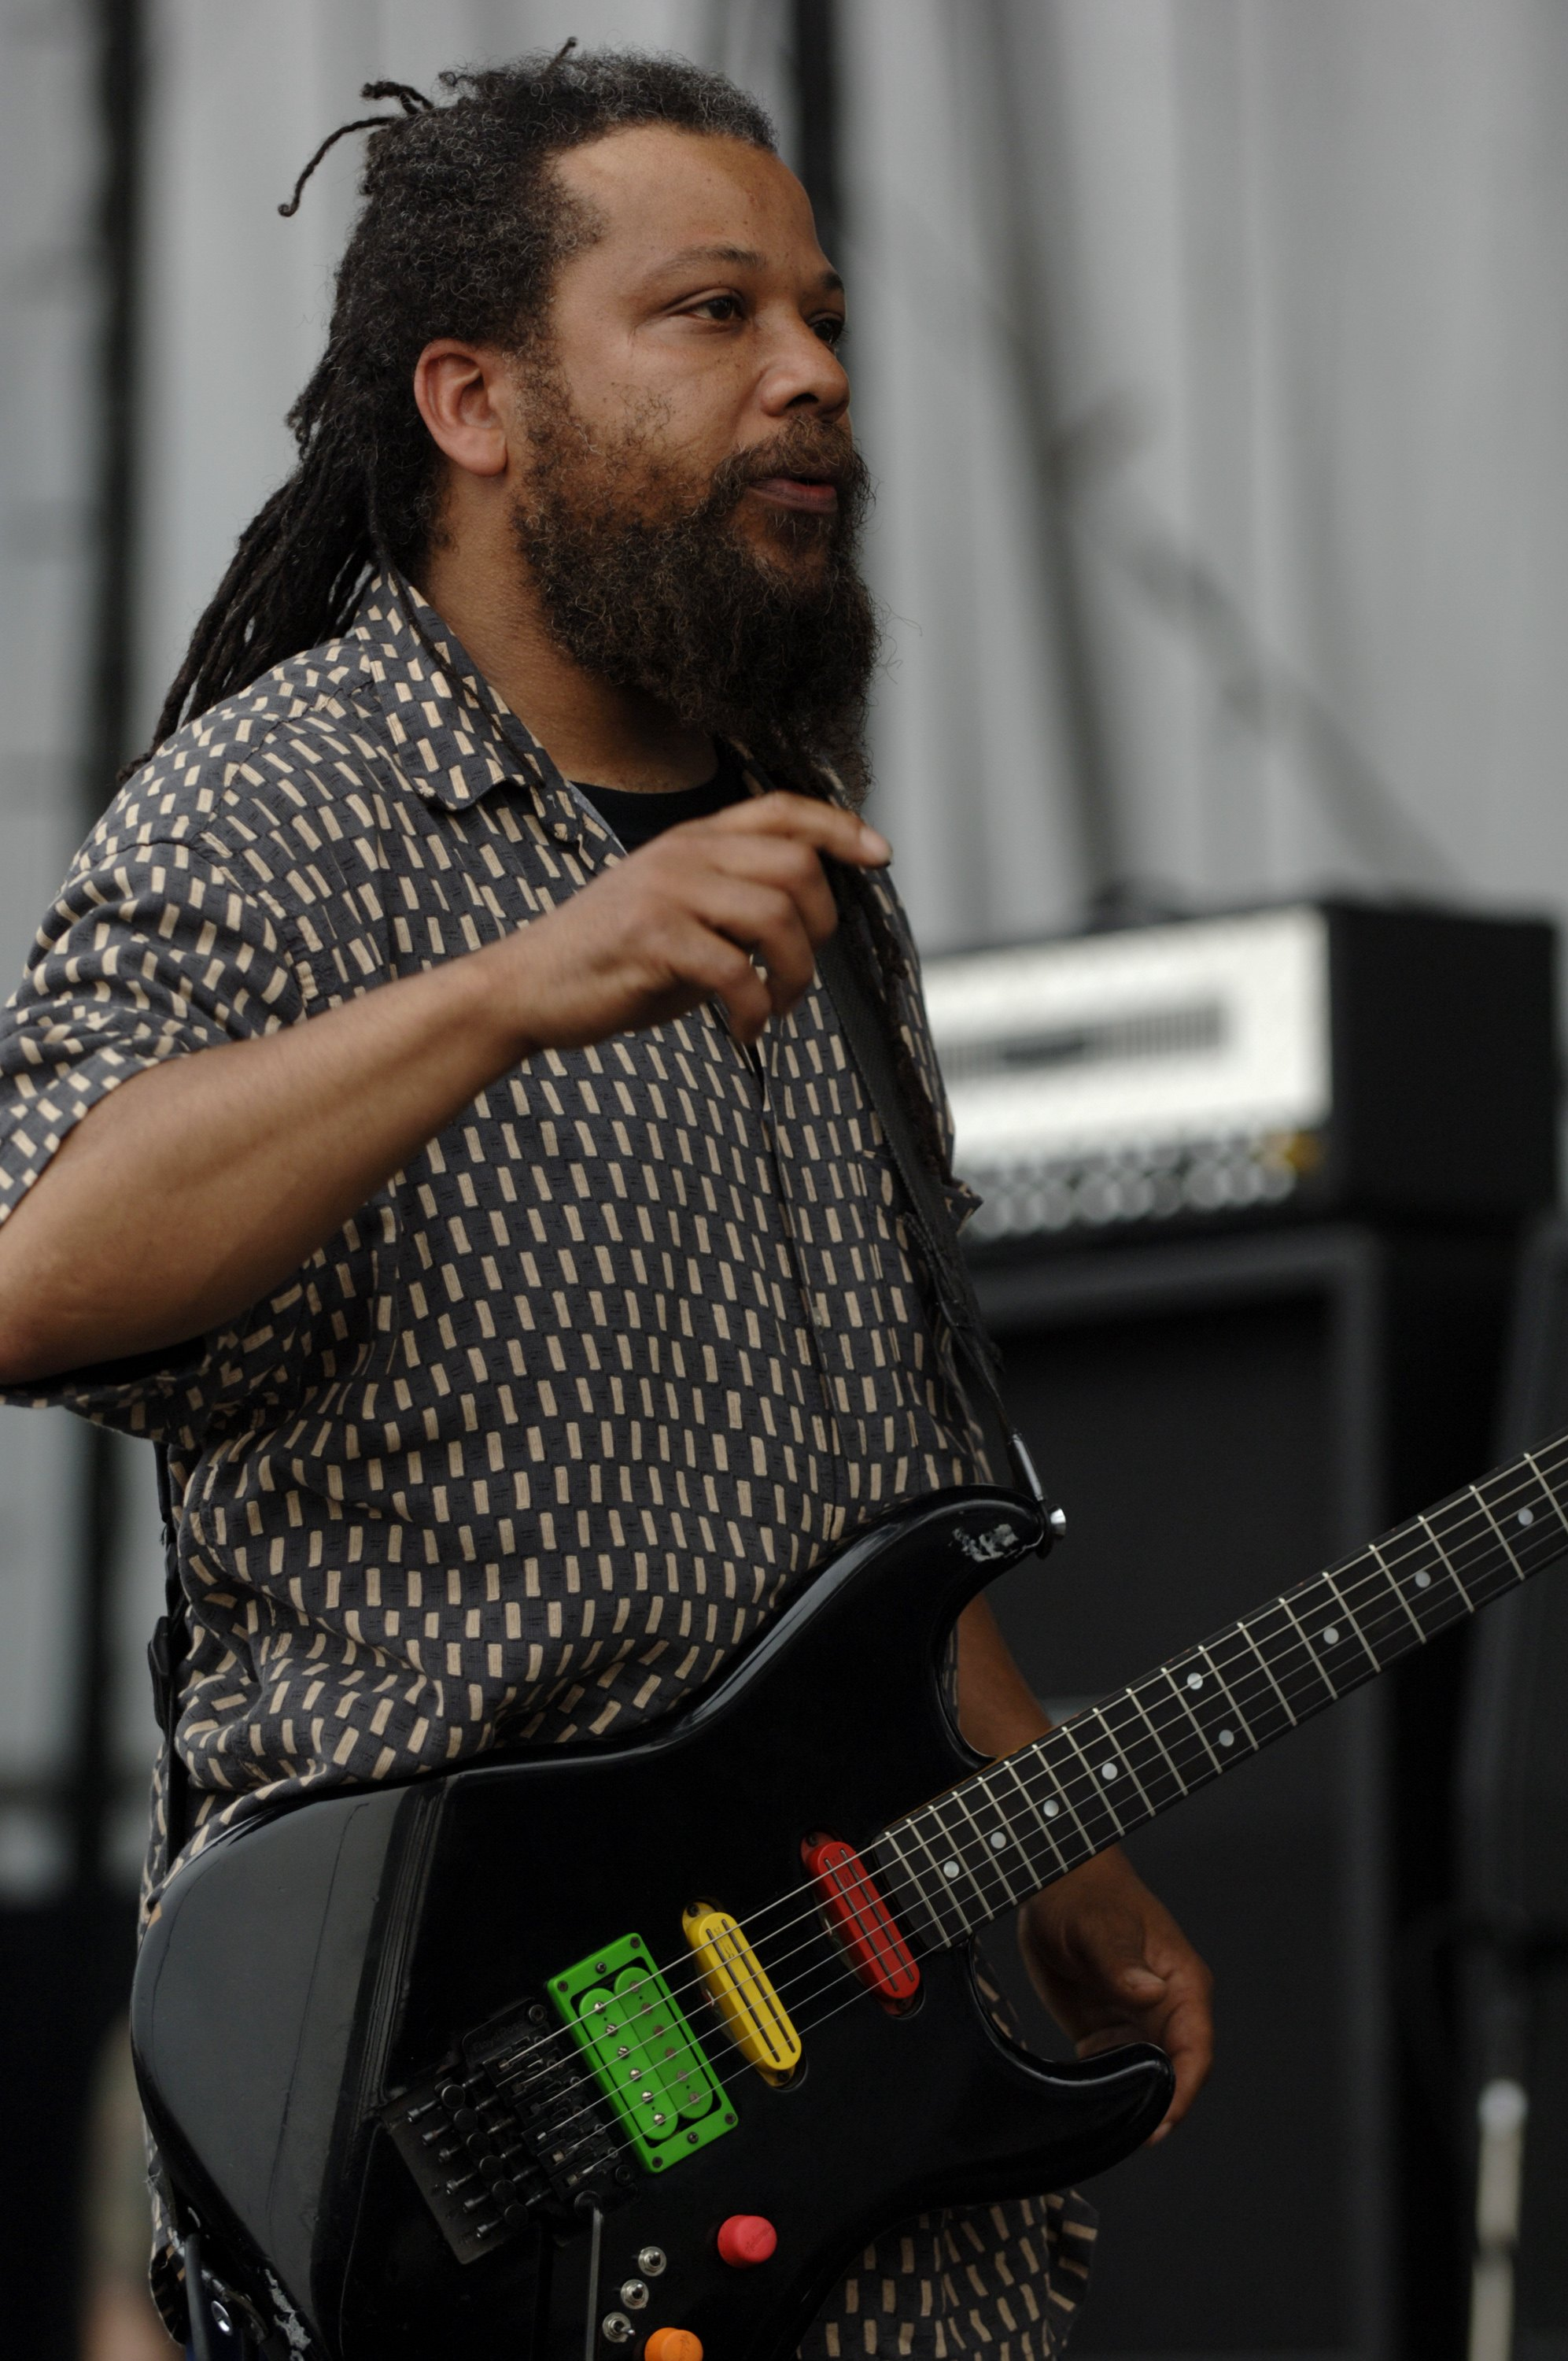 BALTIMORE, MD - AUGUST 5: Dr. Know aka Gary Miller of Bad Brains performs as part of the Virgin Festival at Pimlico Racetrack